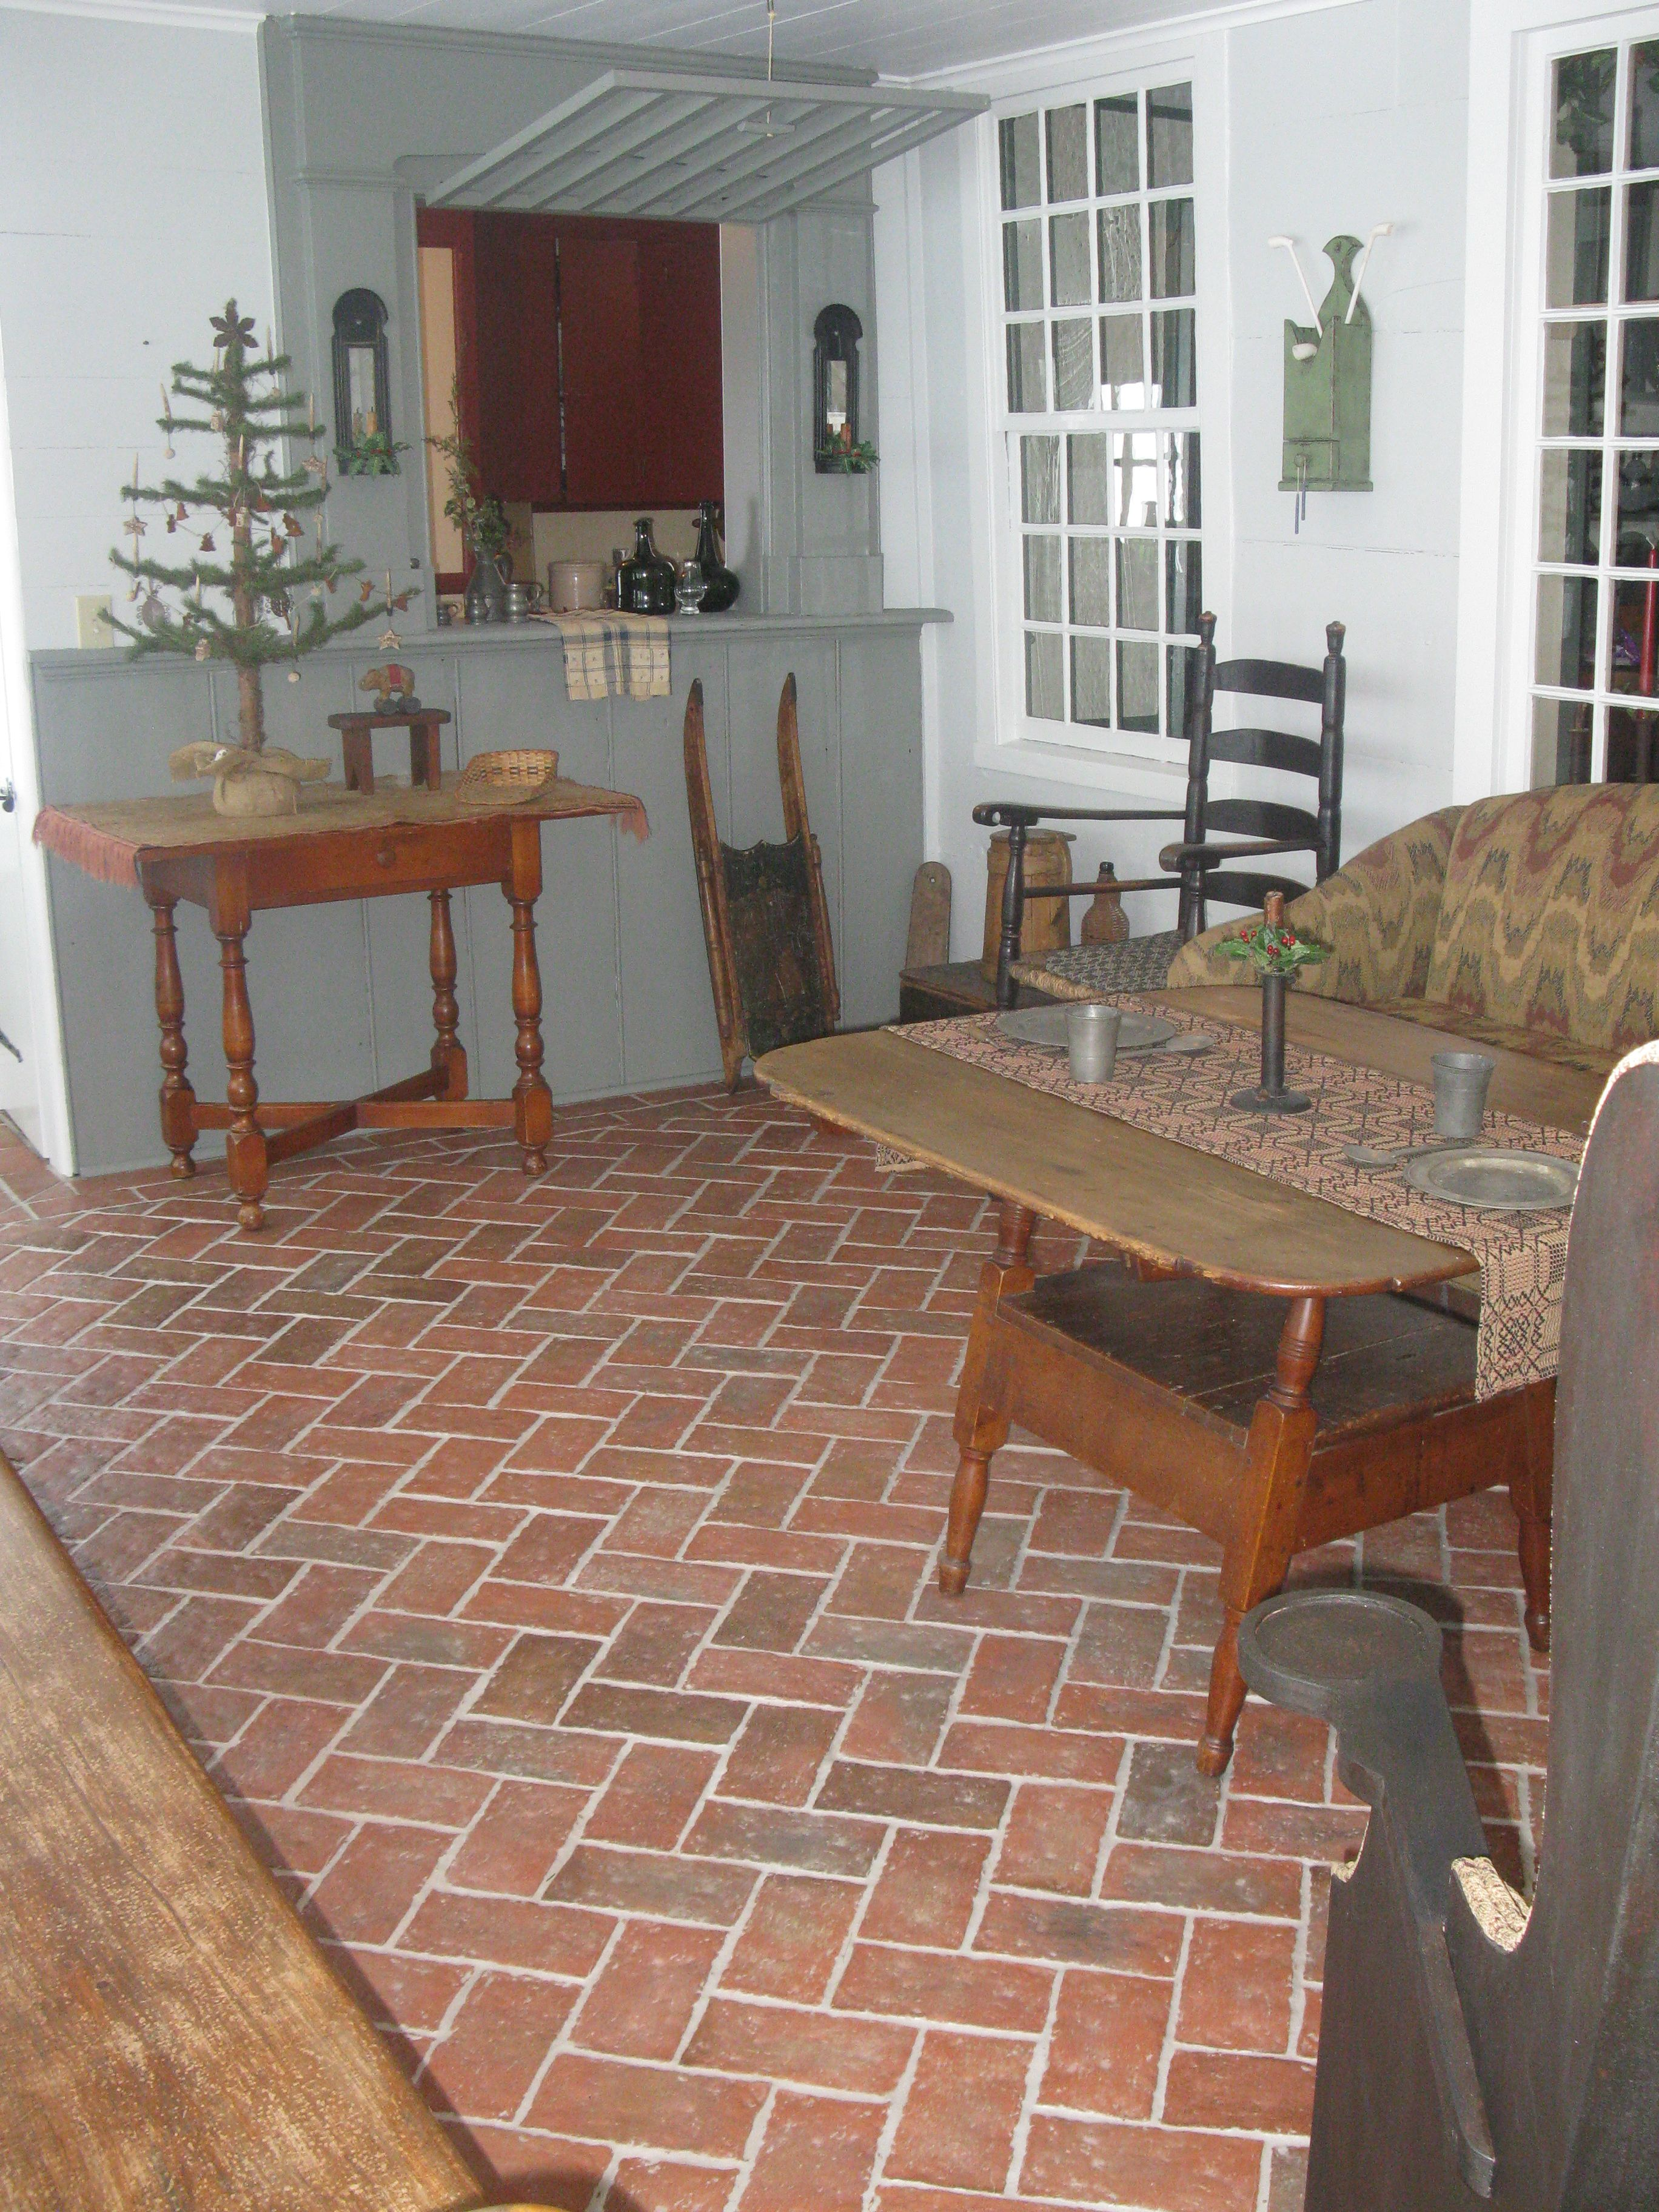 Wrights ferry brick tiles on family room floor marietta color wrights ferry brick tiles on family room floor dailygadgetfo Images